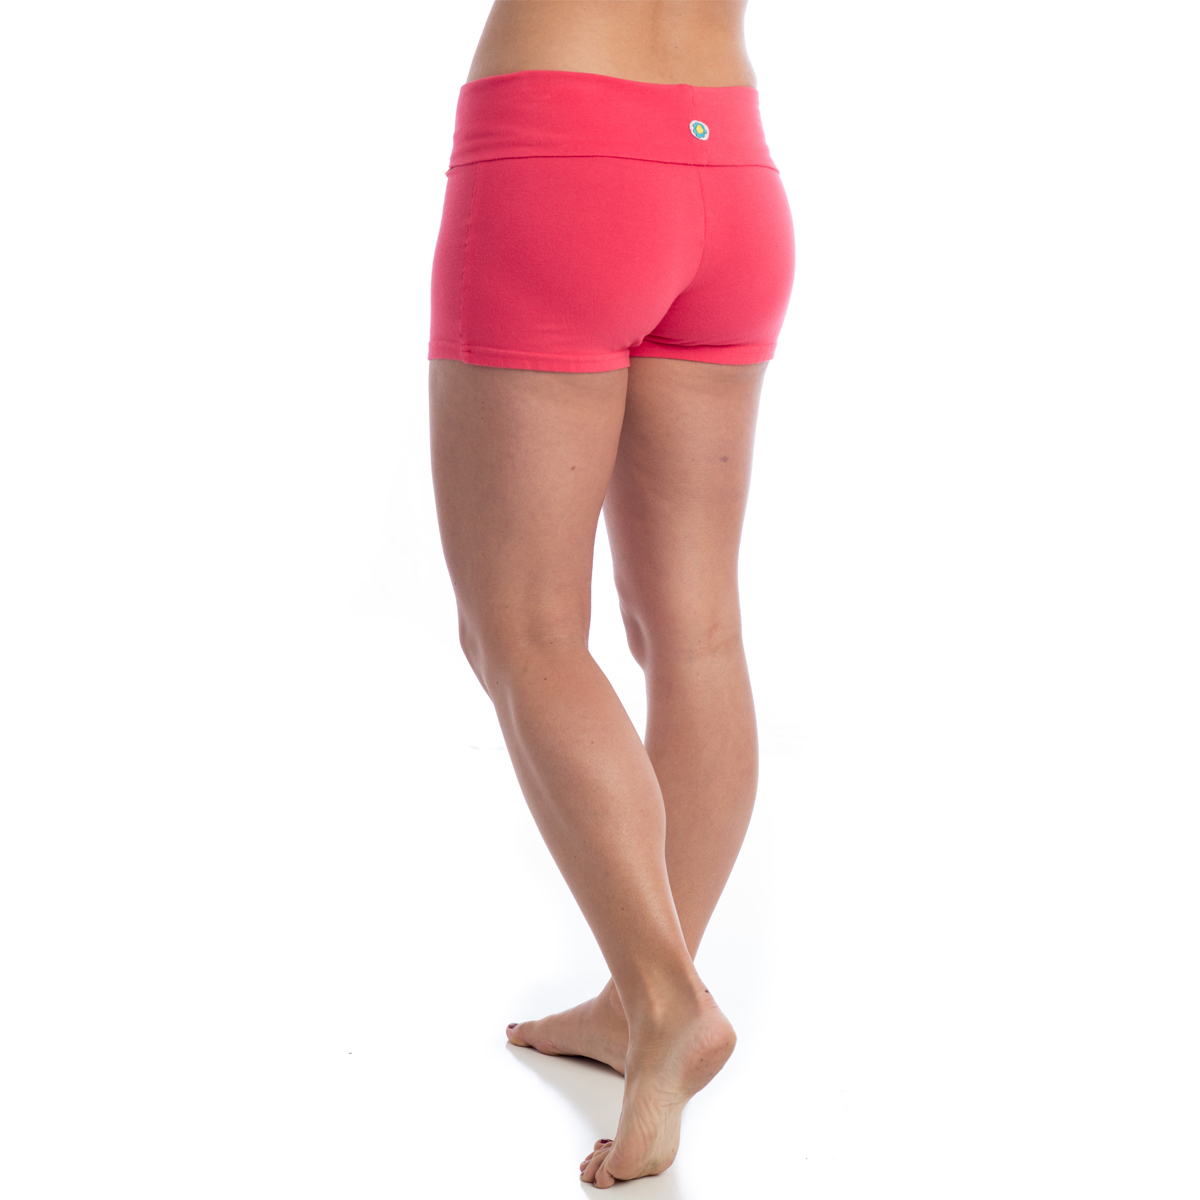 Women's Organic Cotton Yoga Shorts Love Activewear Workout